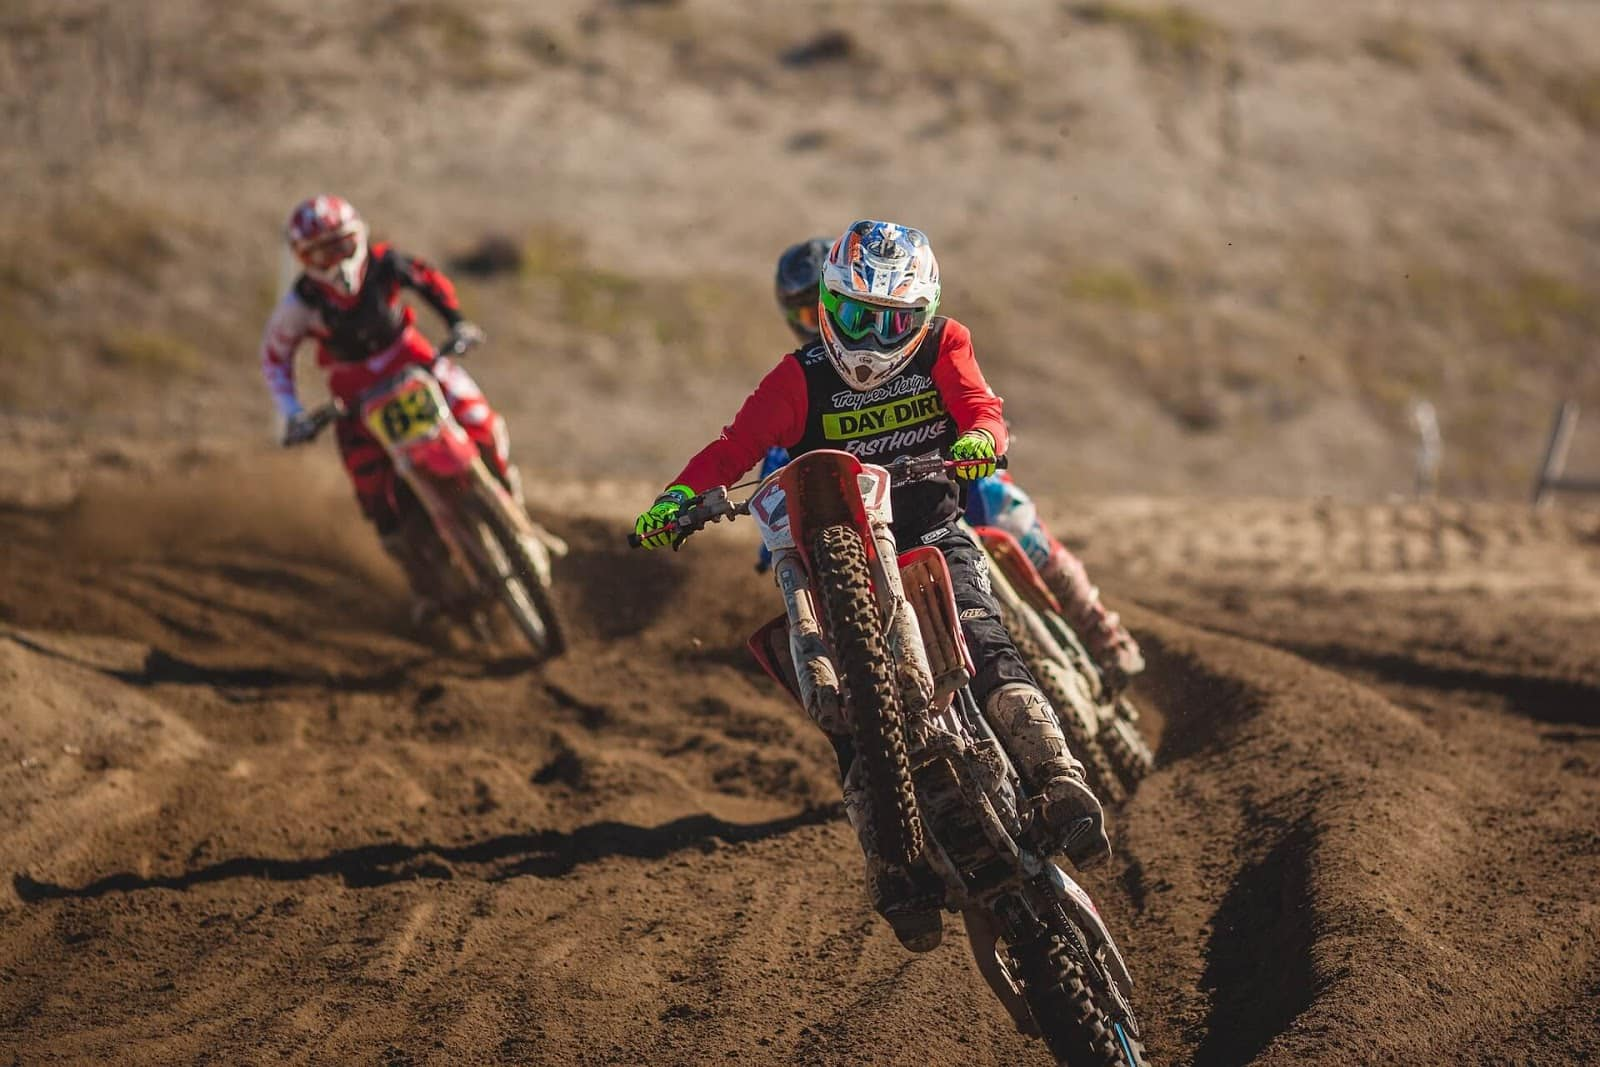 Best Gas for Dirt Bikes